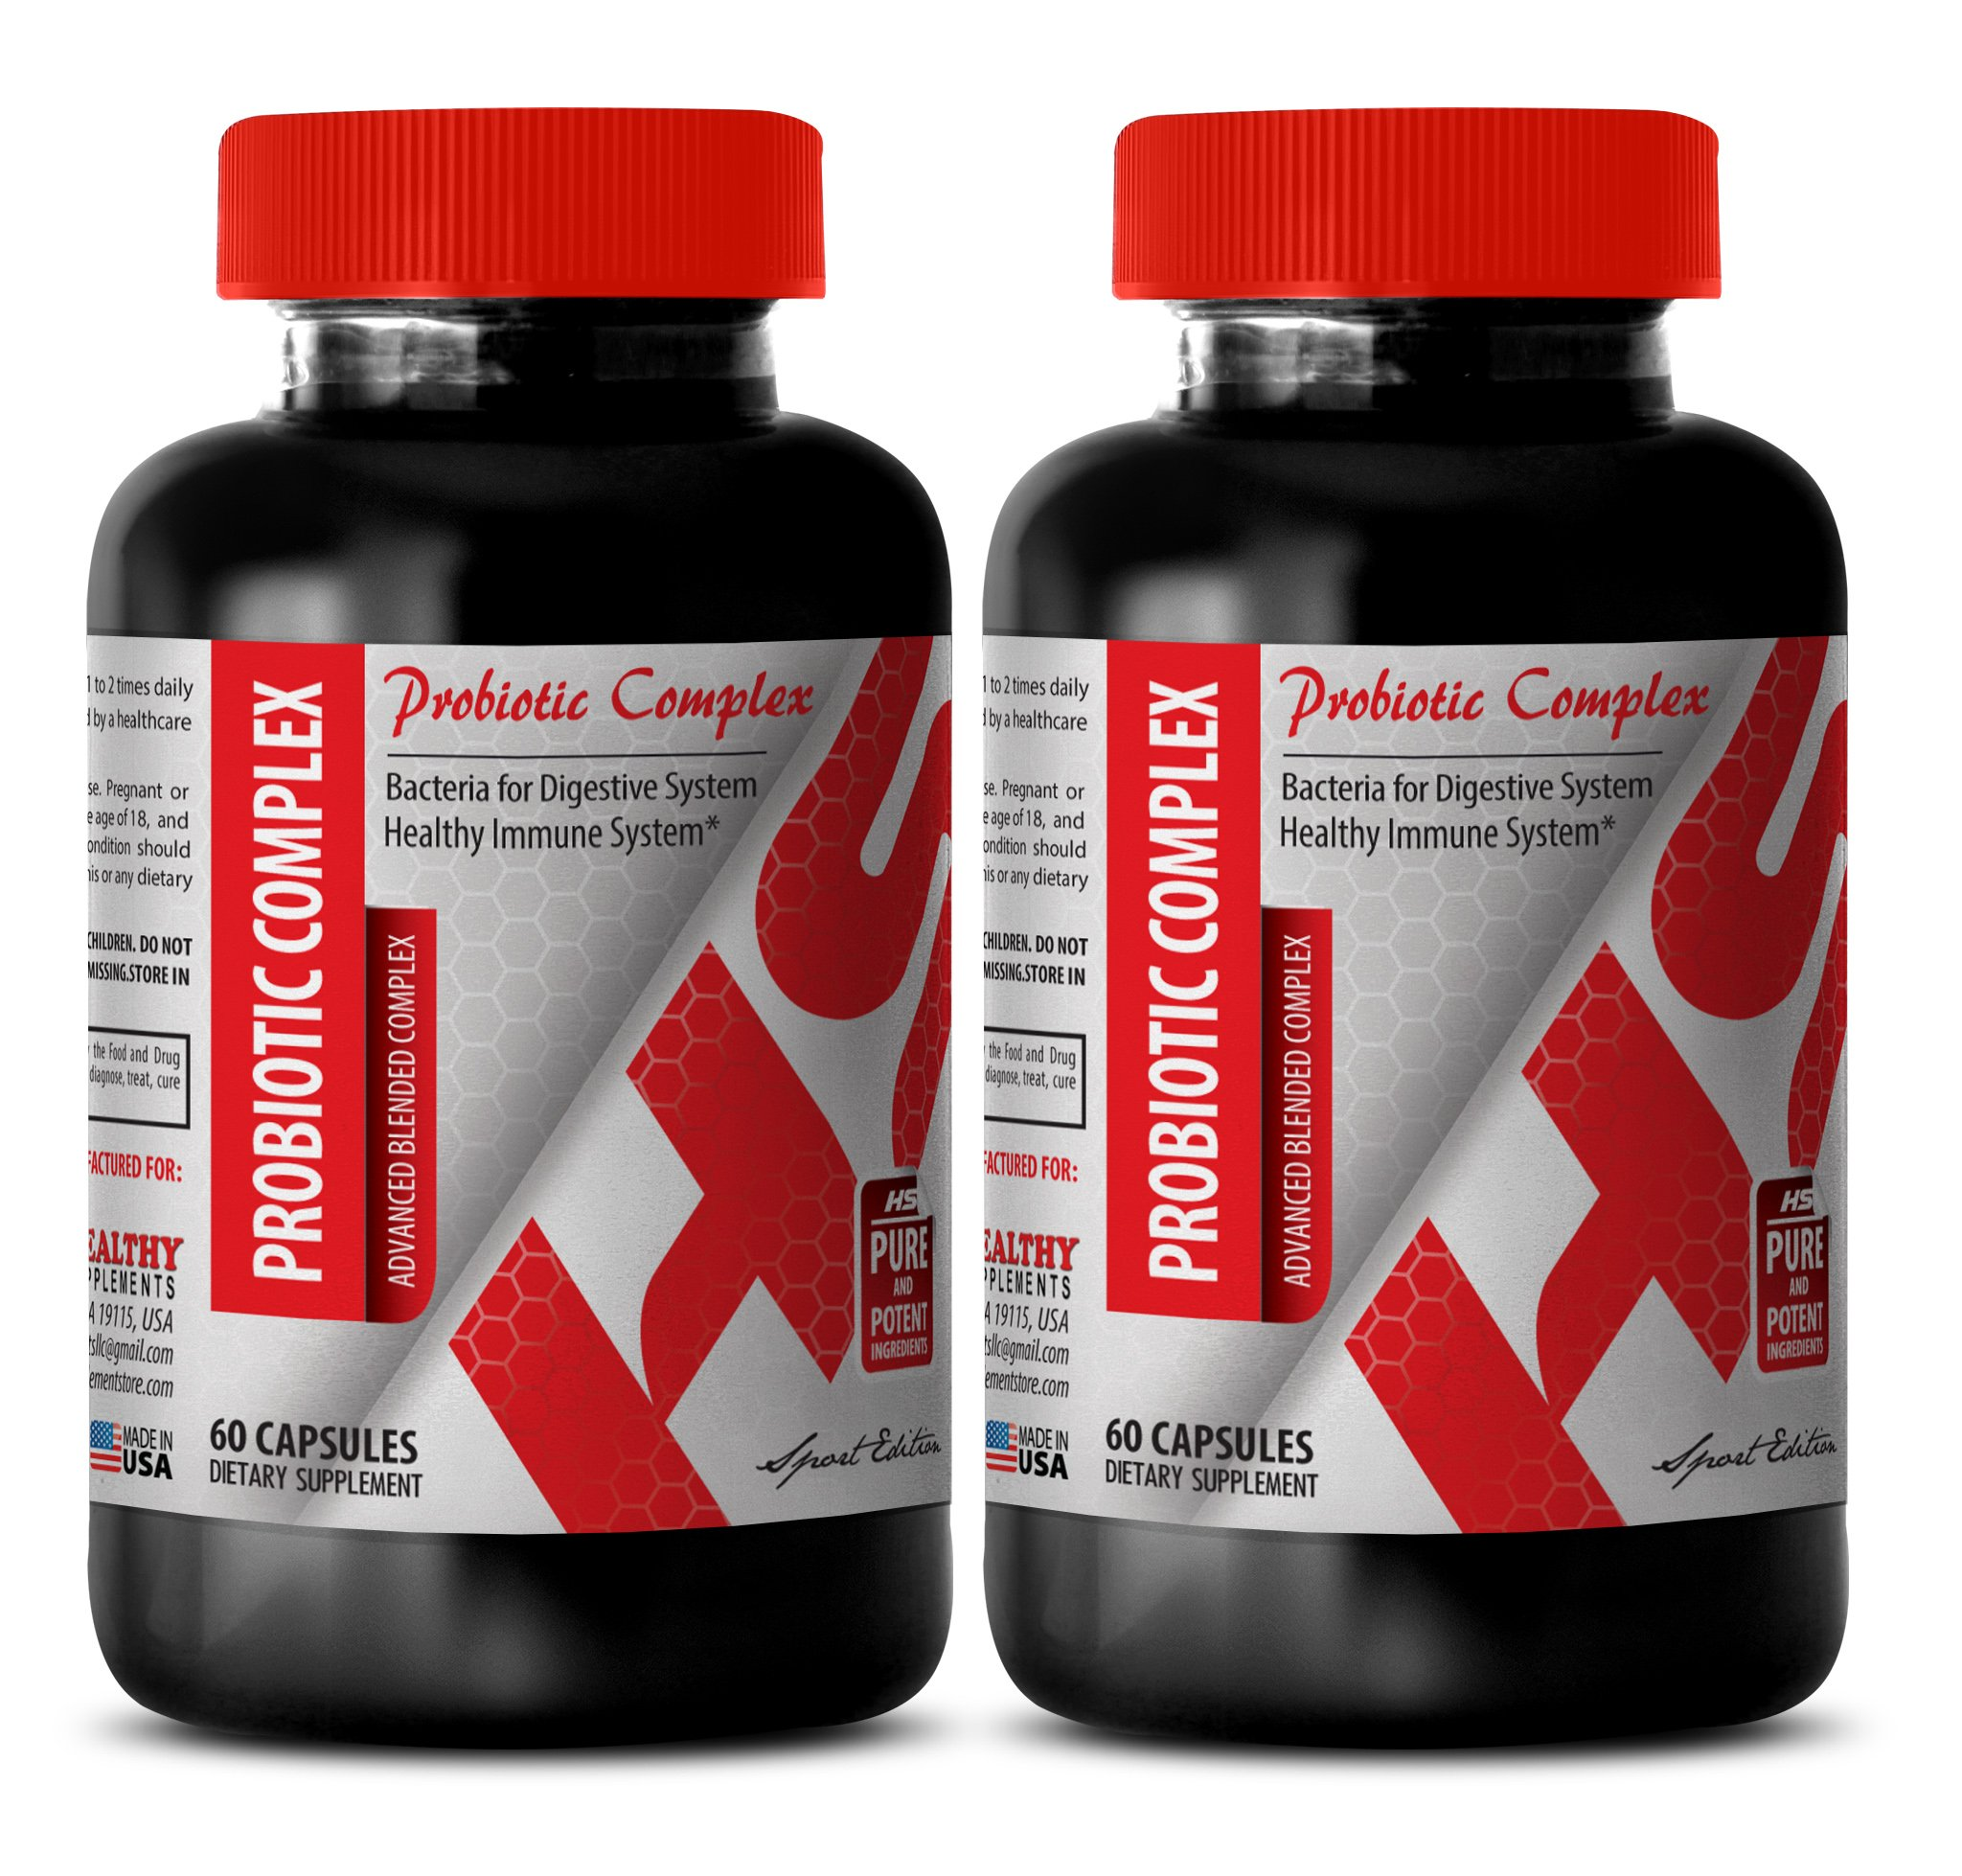 Probiotic with enzymes - PROBIOTIC COMPLEX ADVANCED BLENDED COMPLEX 550 MG - stimulate immune response (2 Bottles)